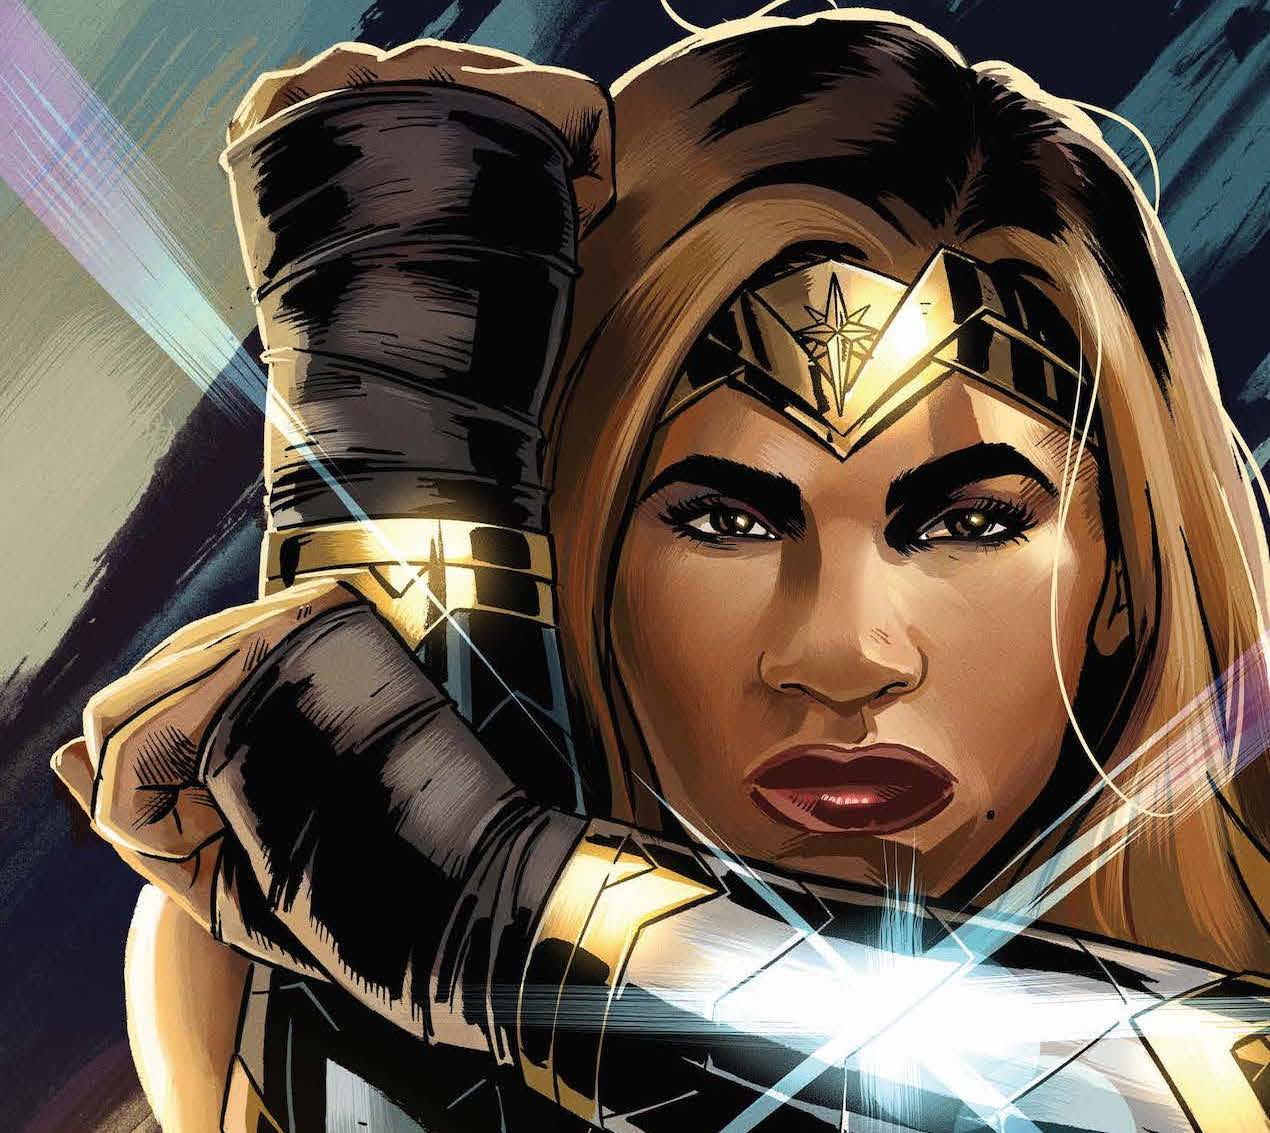 Serena Williams and Wonder Woman team up in new digital comic 'Serving Up Justice'